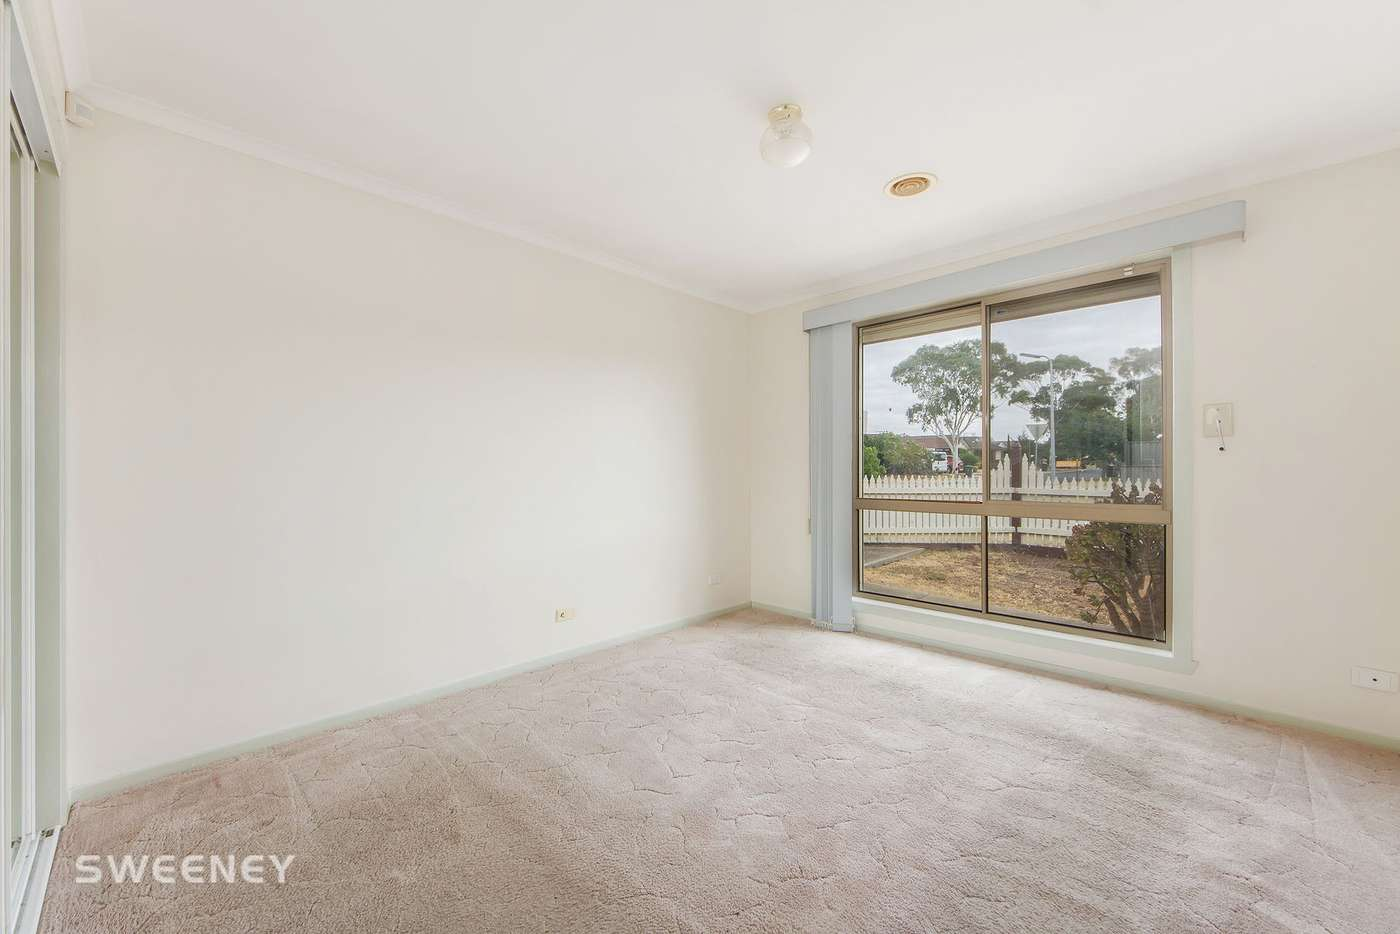 Fifth view of Homely unit listing, 14 Vanessa Way, Delahey VIC 3037